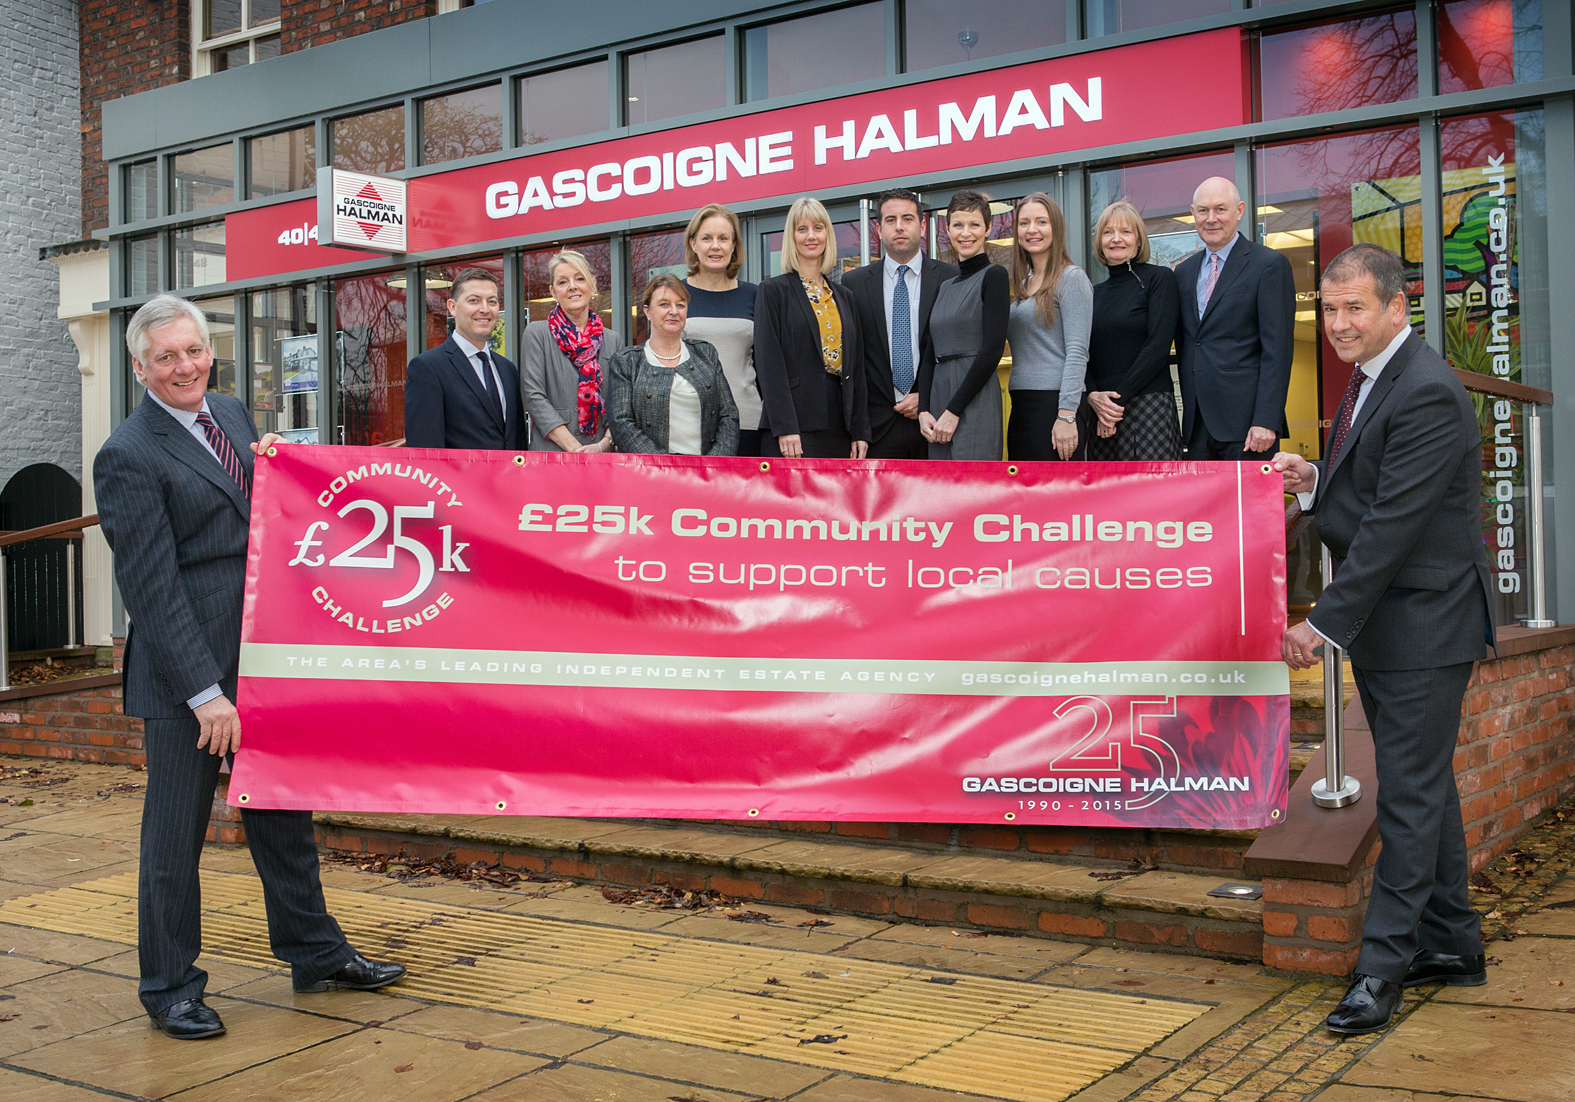 Gascoigne Halman's managing director John Halman and operations director Peter Higham with the estate agent's Wilmslow team